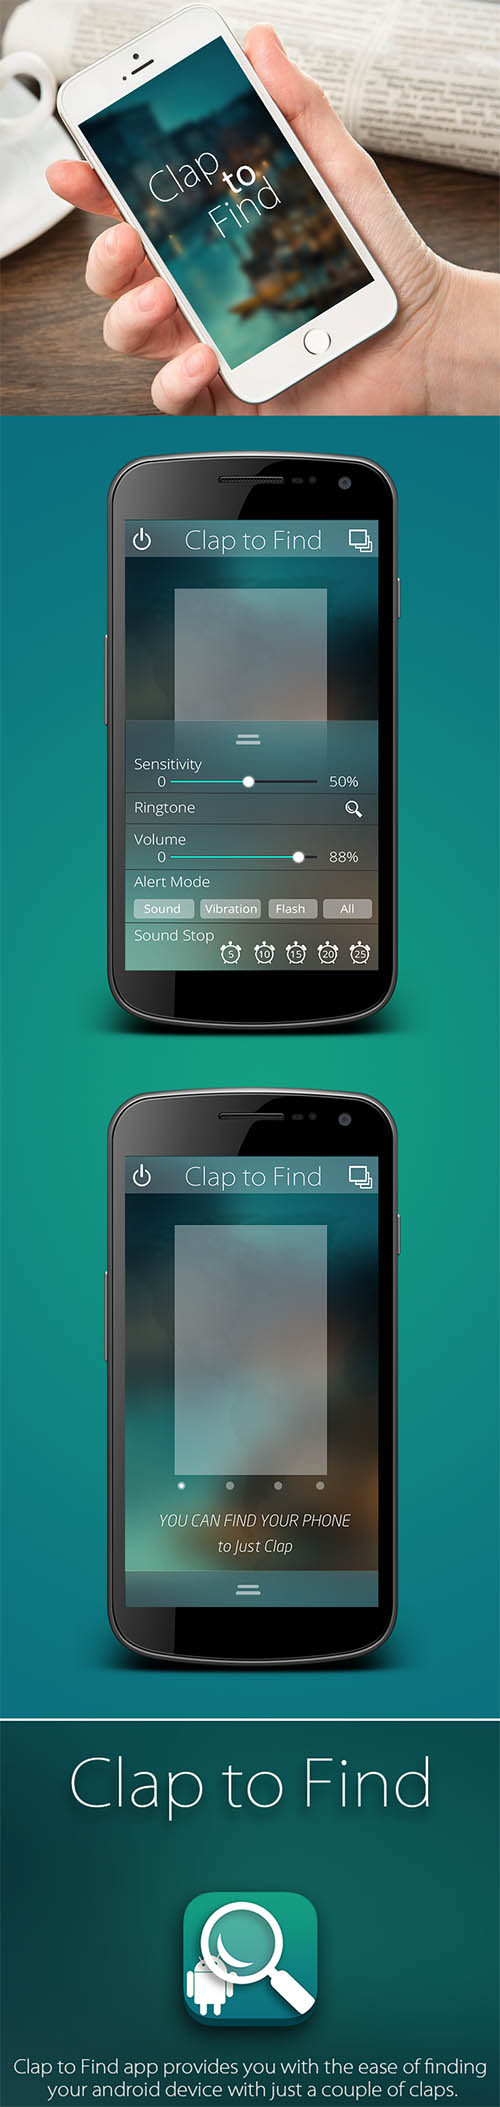 App_Design_Android_Clap_to_Find_vvk By vvk swami